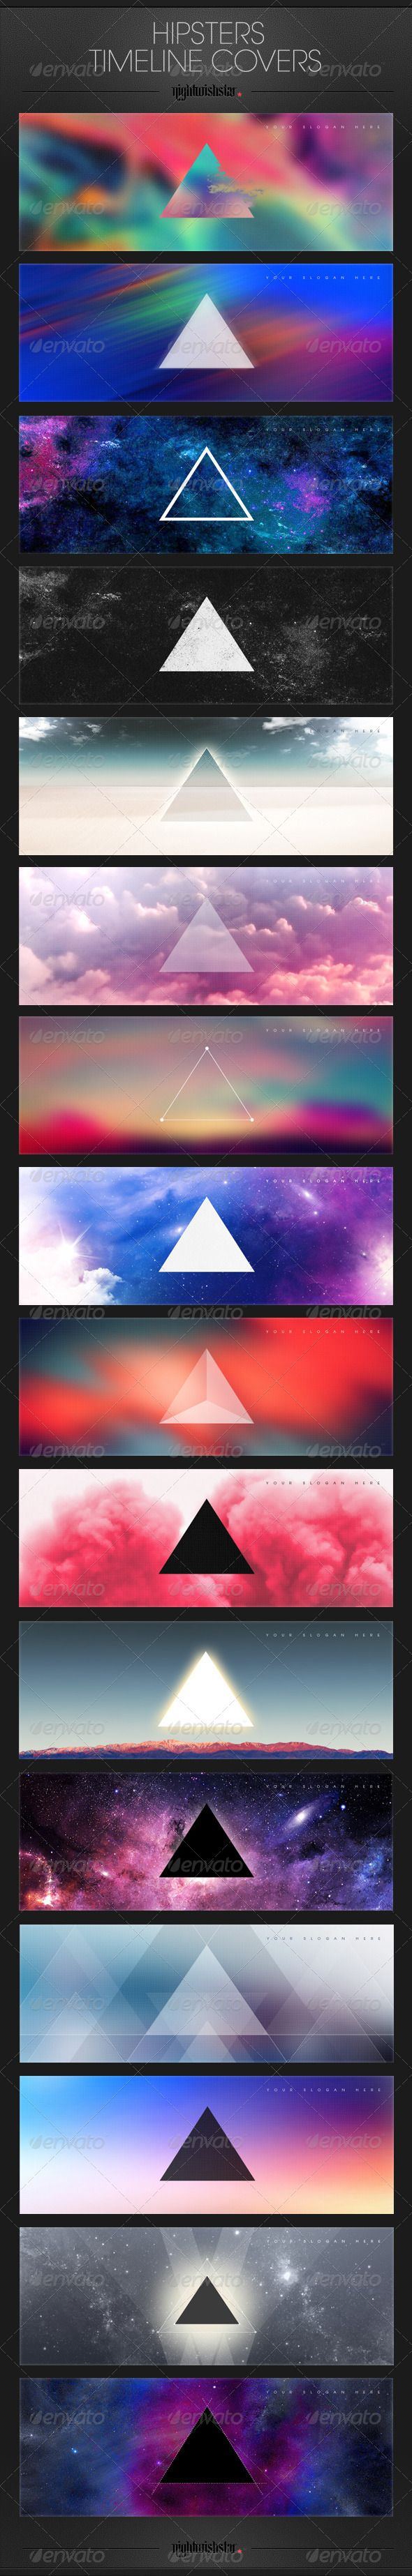 Hipster Facebook Timeline Covers  #GraphicRiver         Hipster Facebook Timeline Covers   zip includes: 15 editable psd files and information.txt file;  Size 851×315 px;  free font used: information inside main zip file  psd files includes my artwork;  check also my 2014 calendar (same style!) in my portfolio;  Visit also Mesmeriseme and Monsterunderbed !                         Created: 7 December 13                    Graphics Files Included:   Photoshop PSD                   Layered…